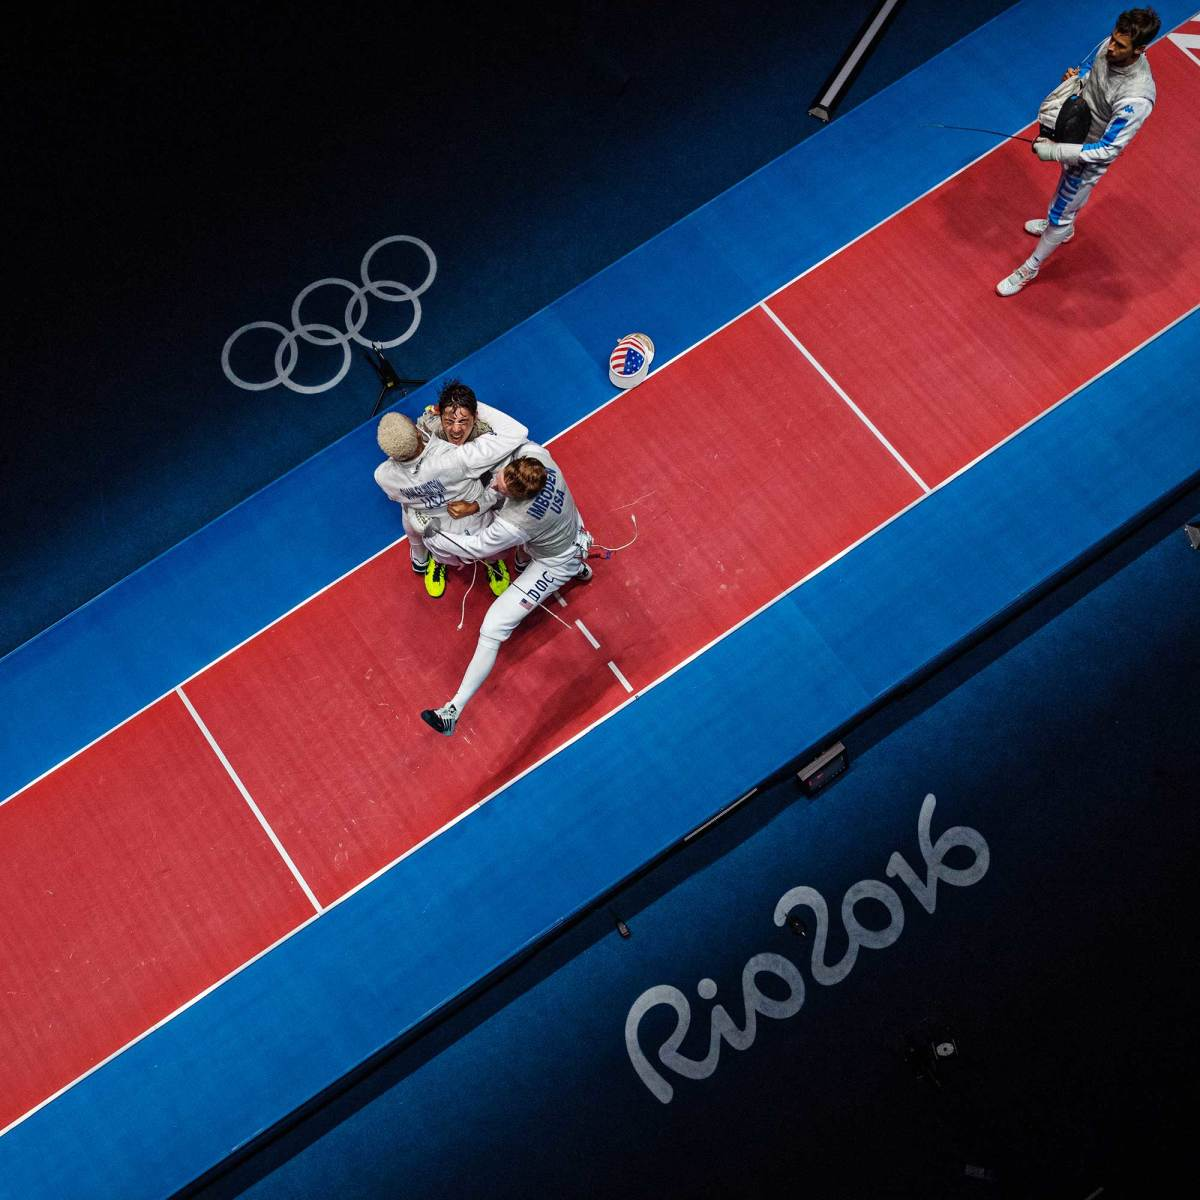 Best-photos-from-the-rio-olympic-games-si-19.jpg